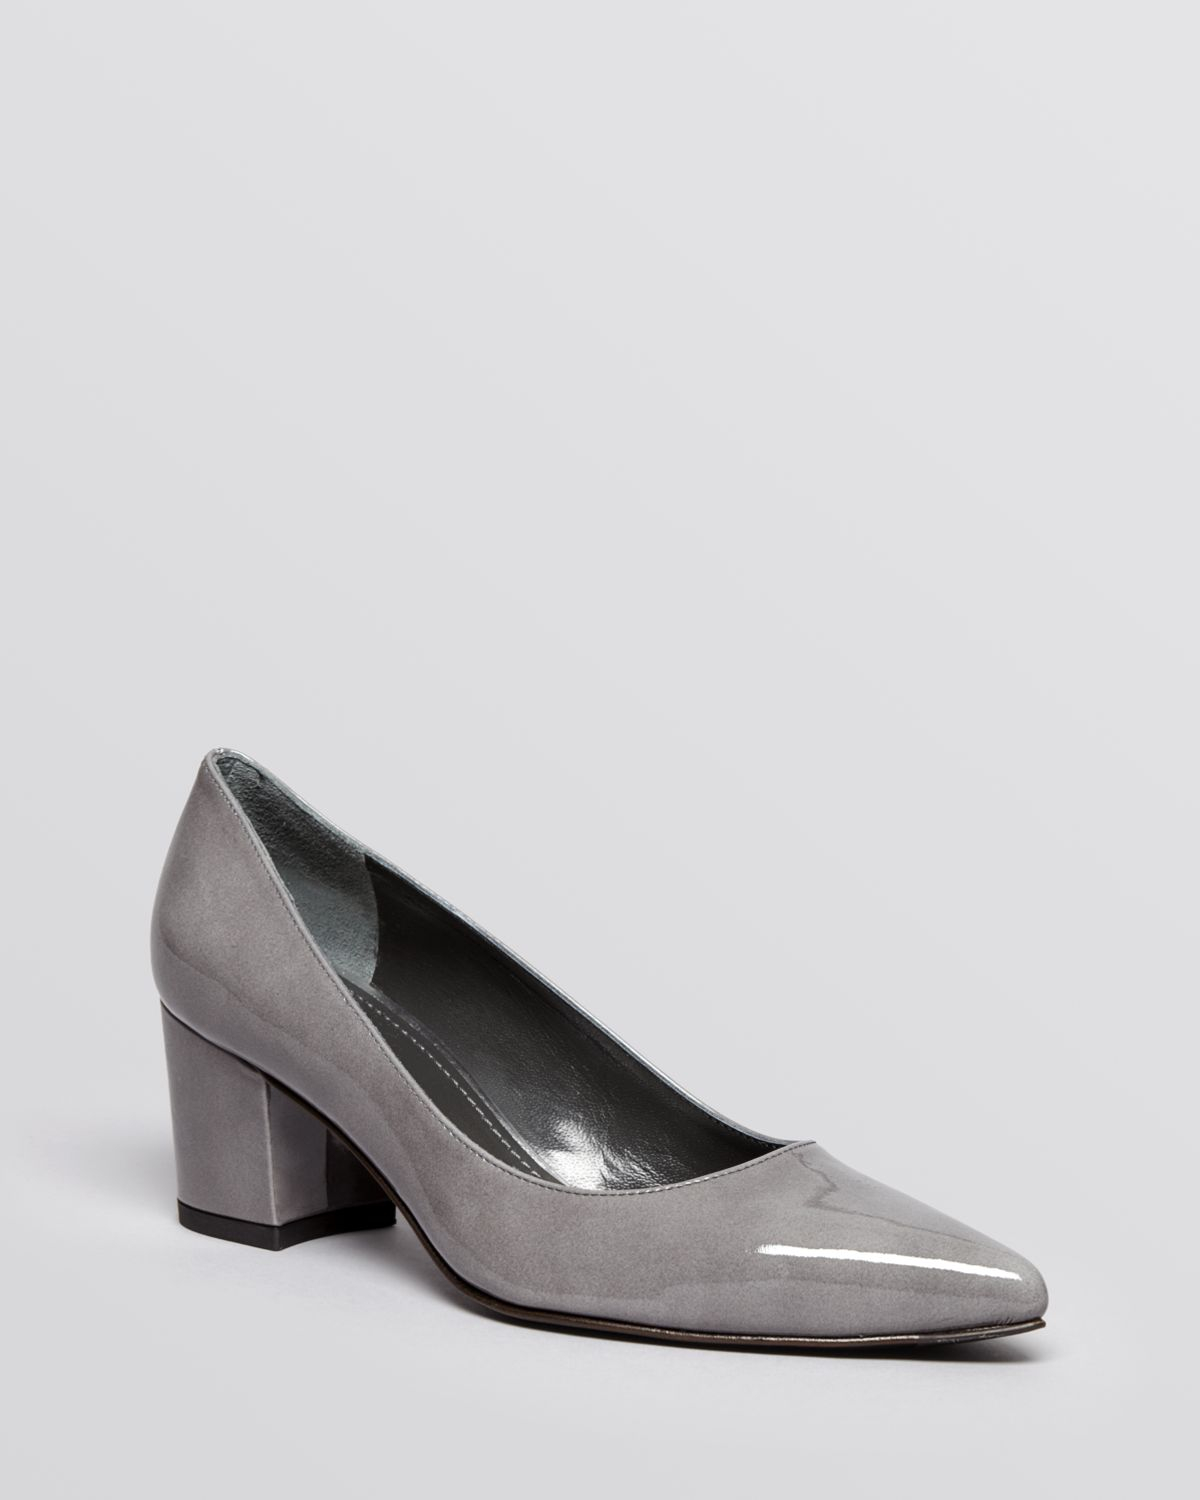 get authentic cheap price Stuart Weitzman Square-Toe Buckle Pumps comfortable online outlet Cheapest 2014 new cheap price YUnlHV